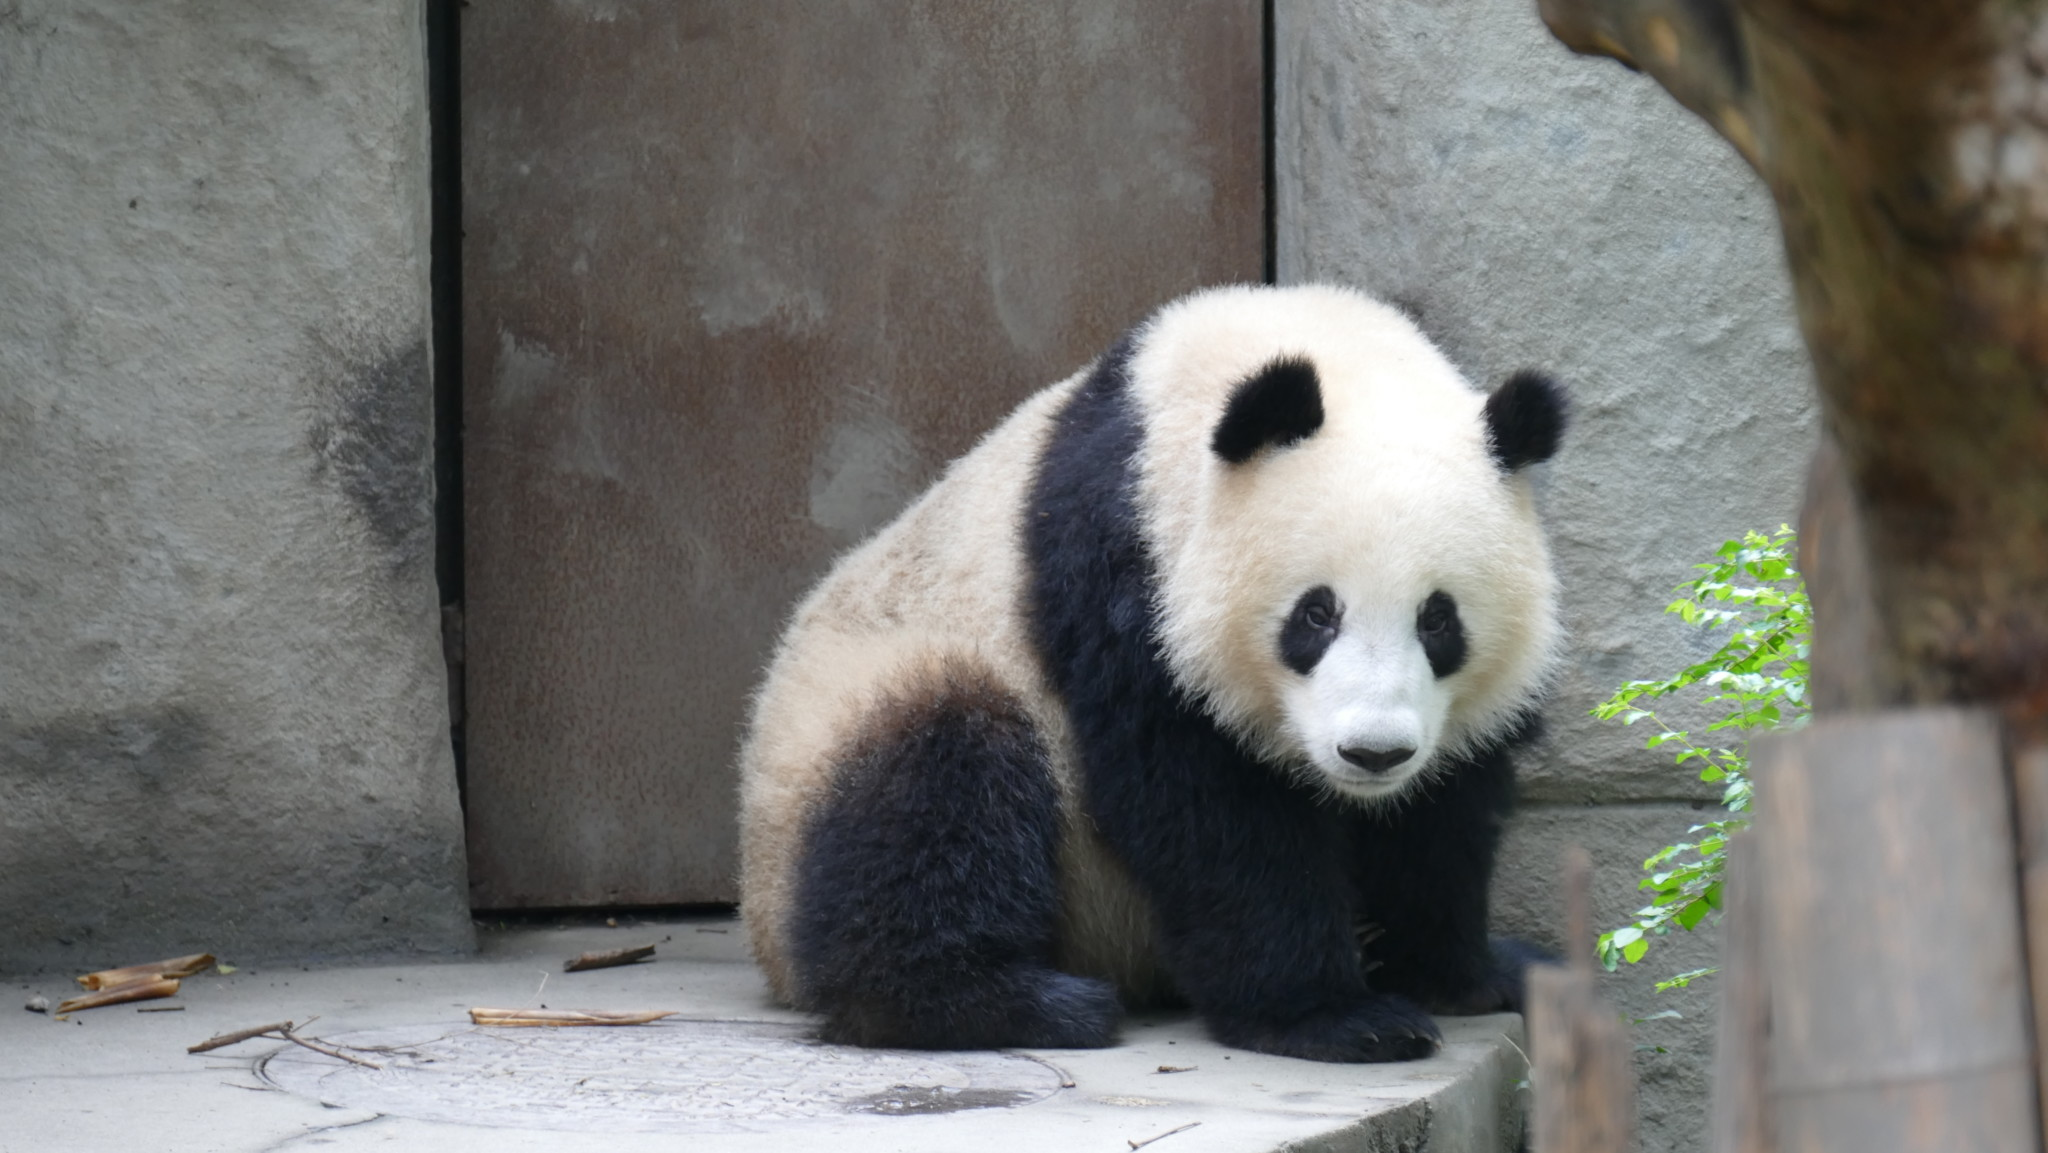 Video - Impressionen Panda Base Chengdu 4K 26.09.2015